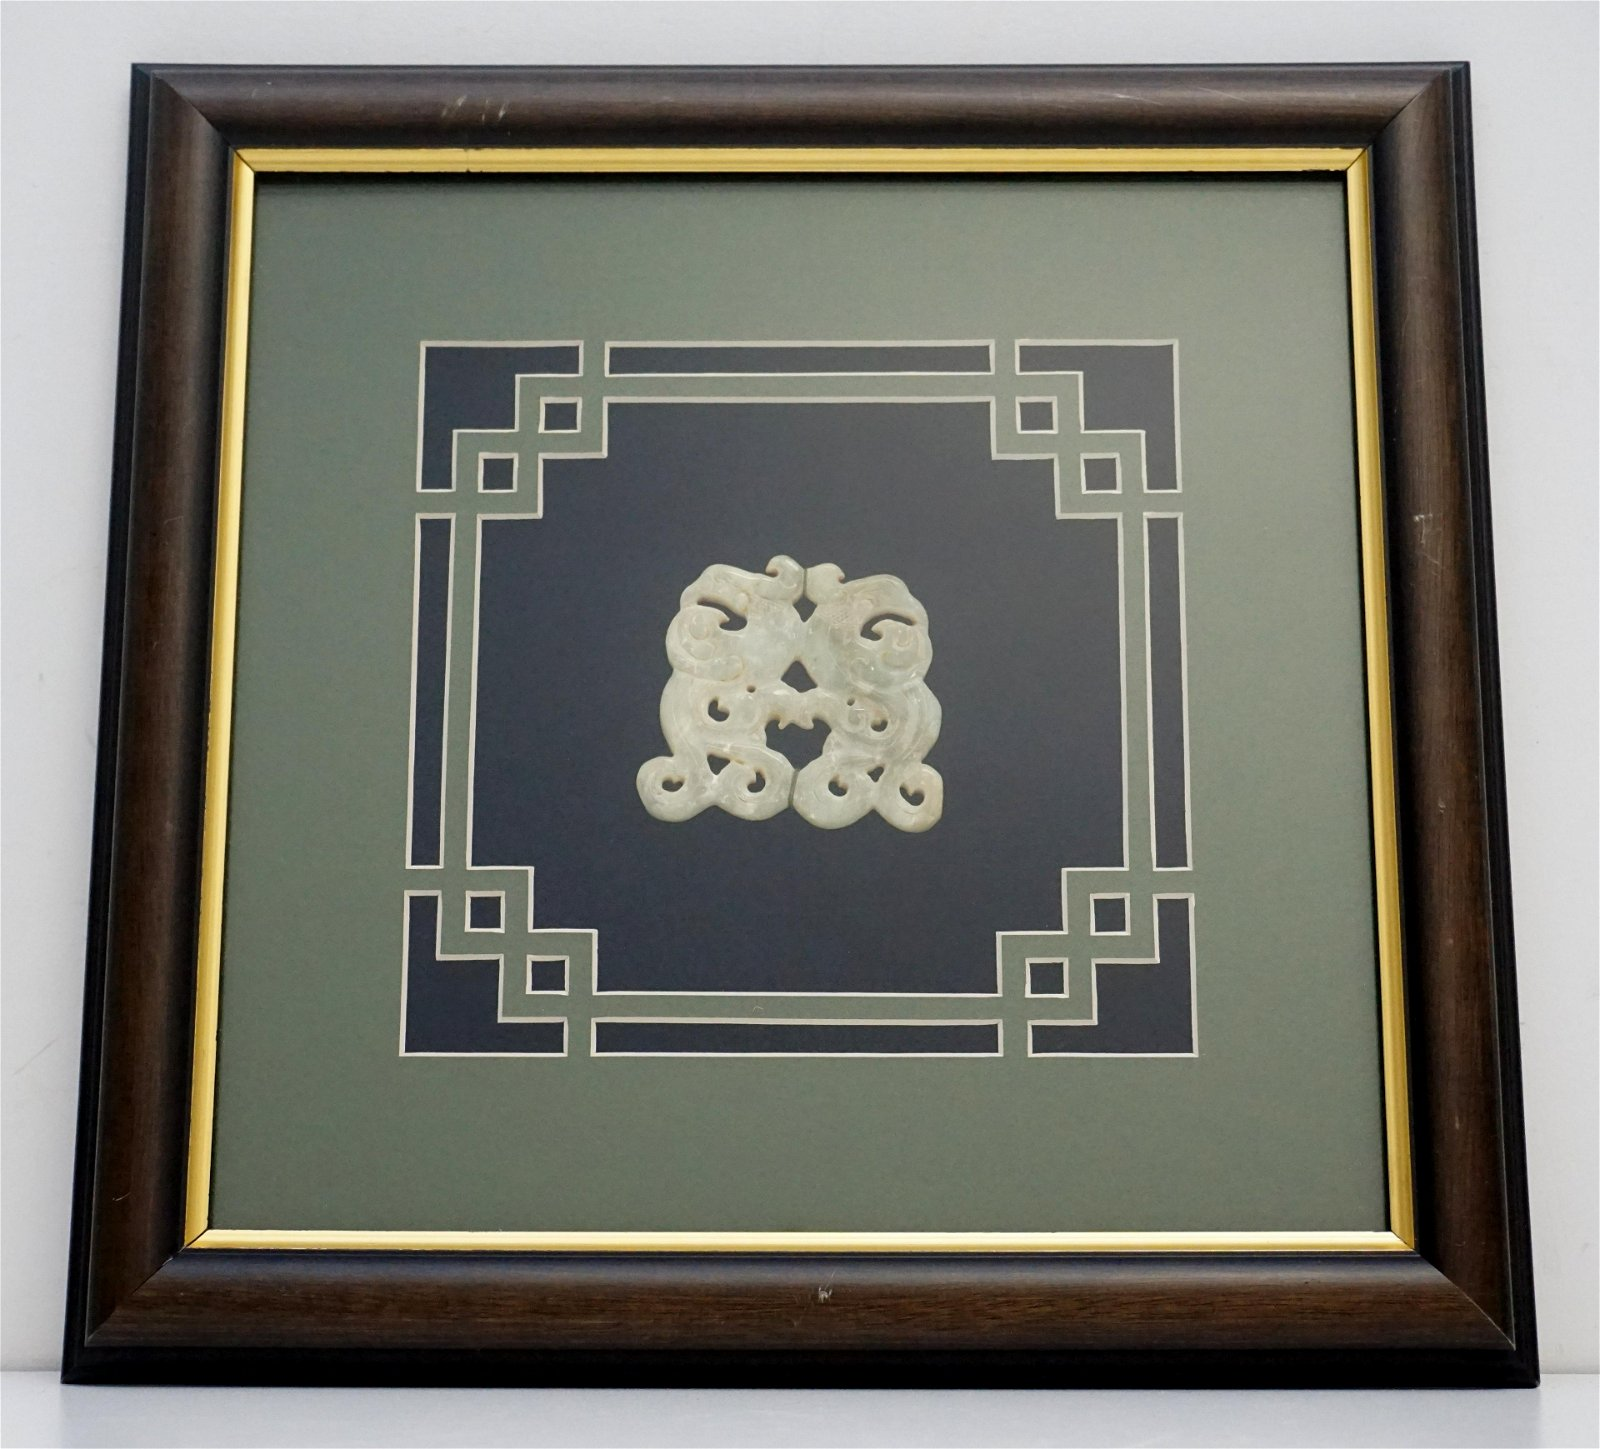 FRAMED 19th c CHINESE JADE ROUNDEL